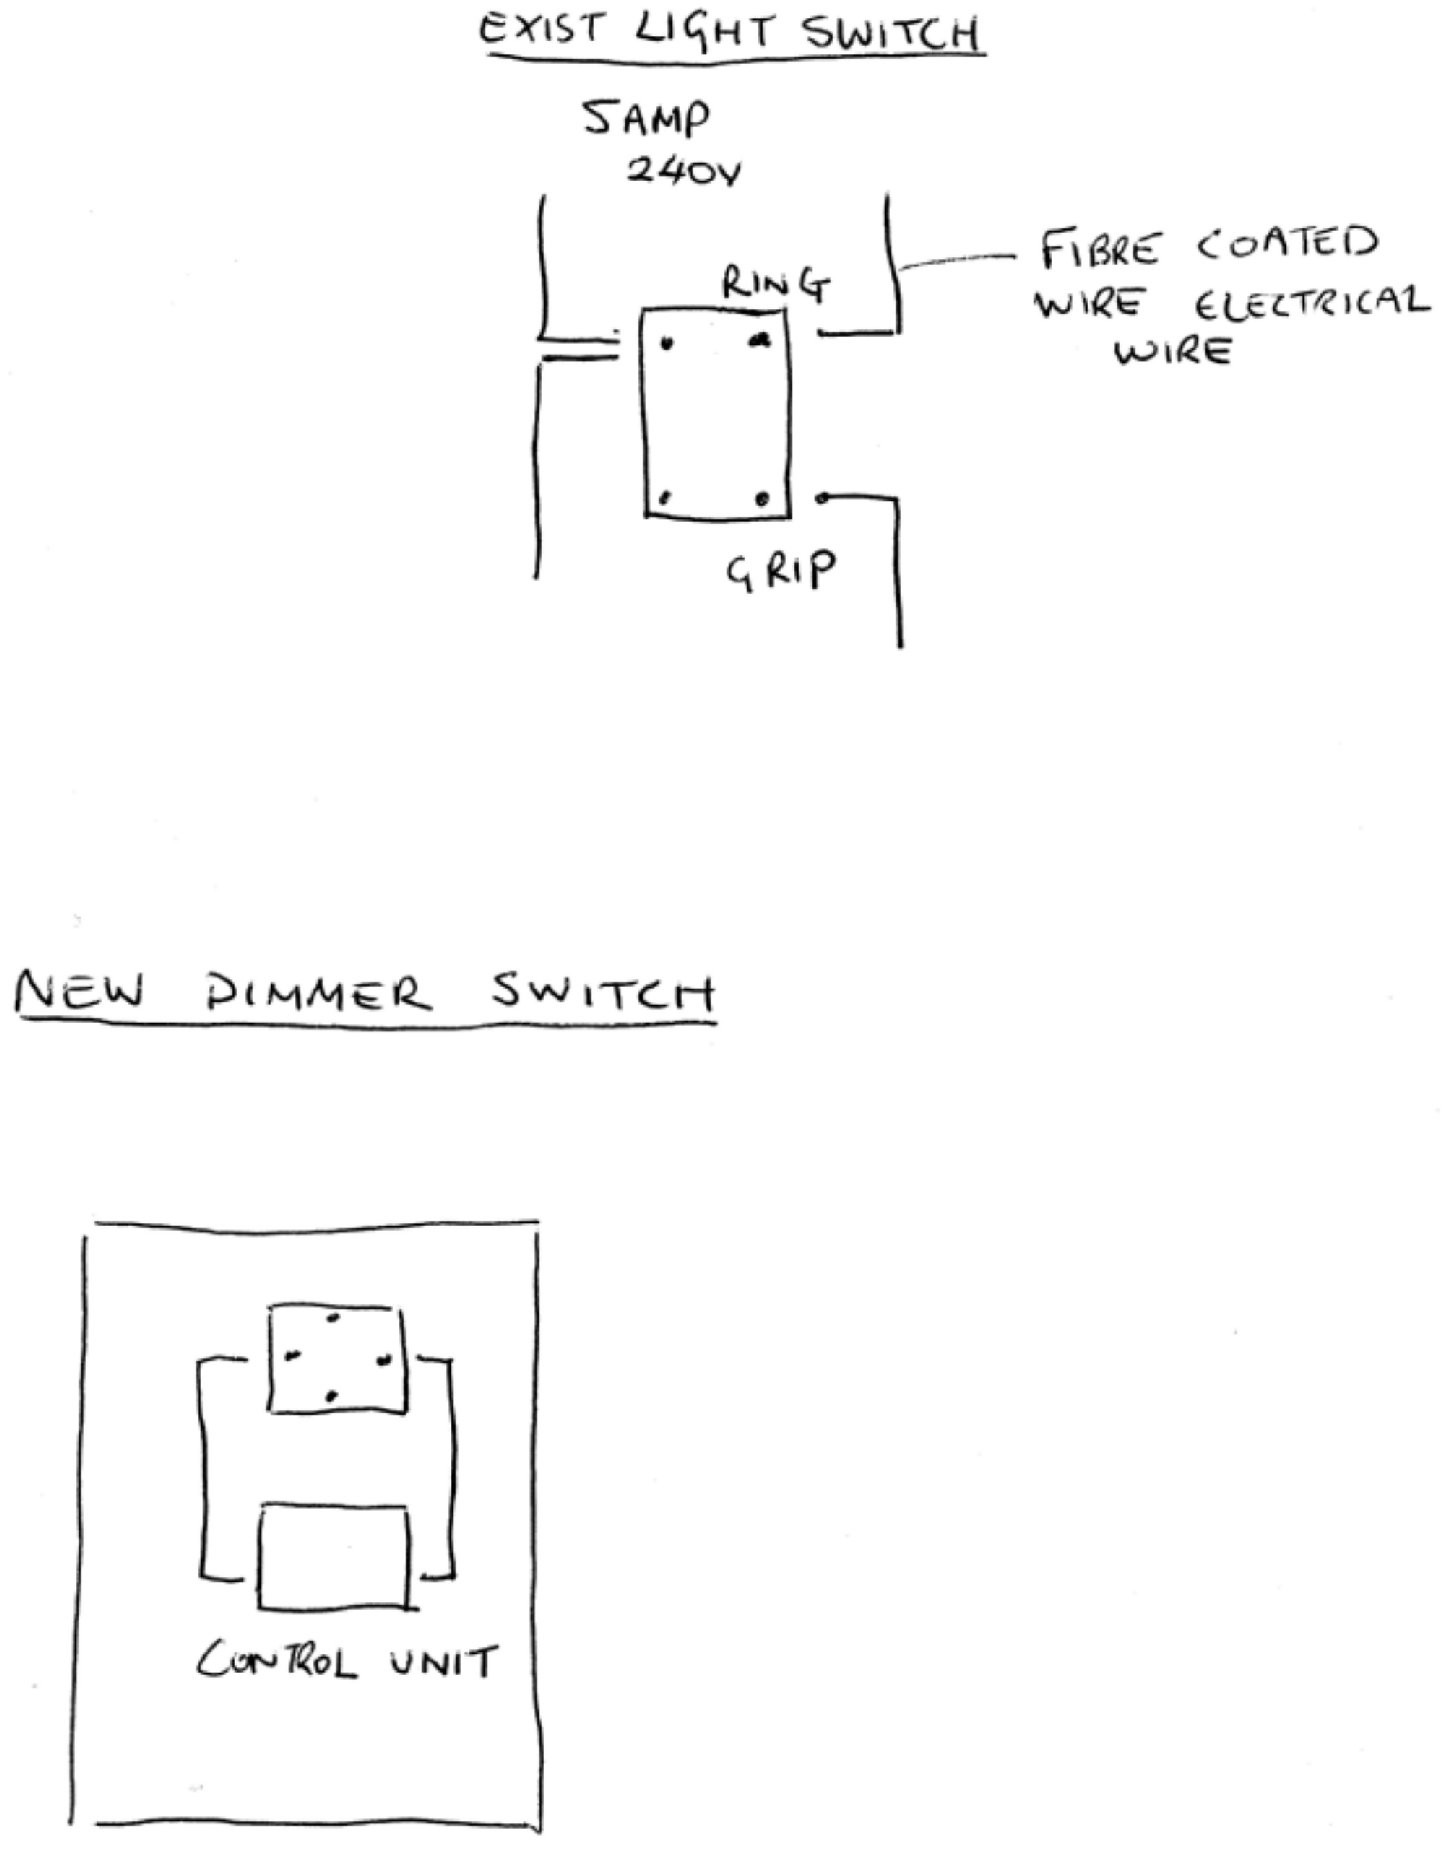 Fitting dimmer switch to old electrical wiring-electrical-circuit.jpg